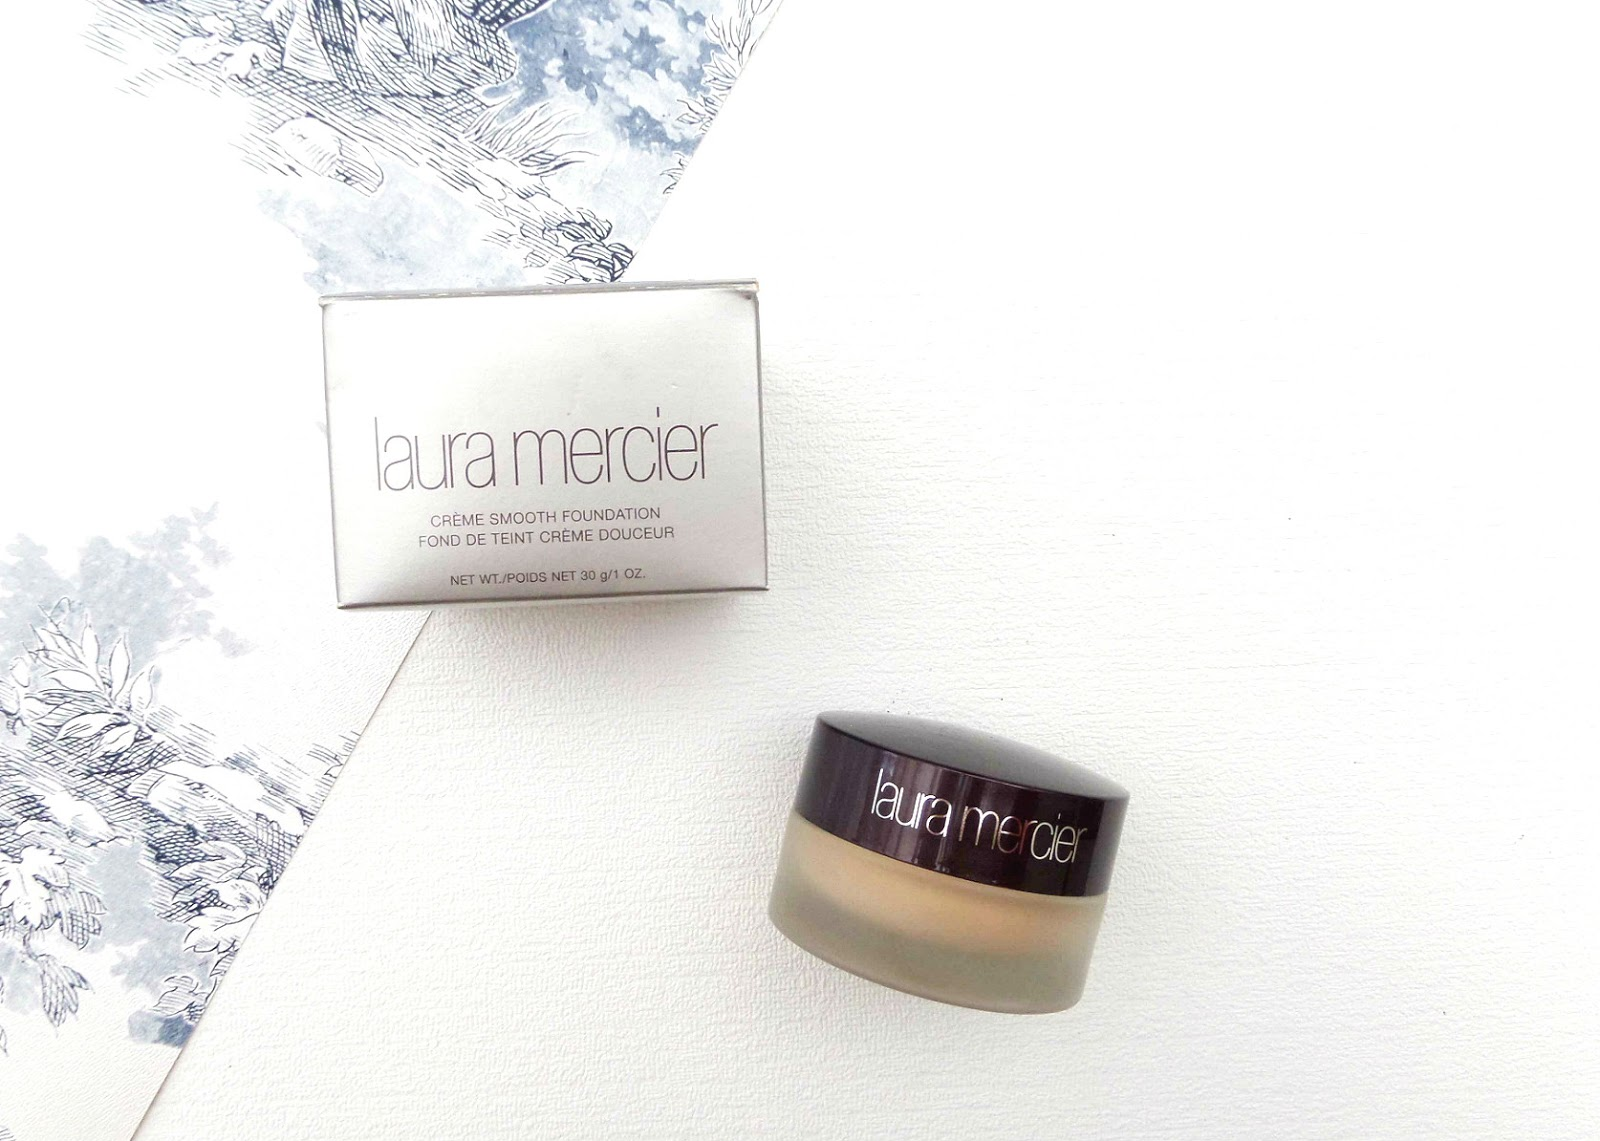 The Laura Mercier Creme Smooth Foundation